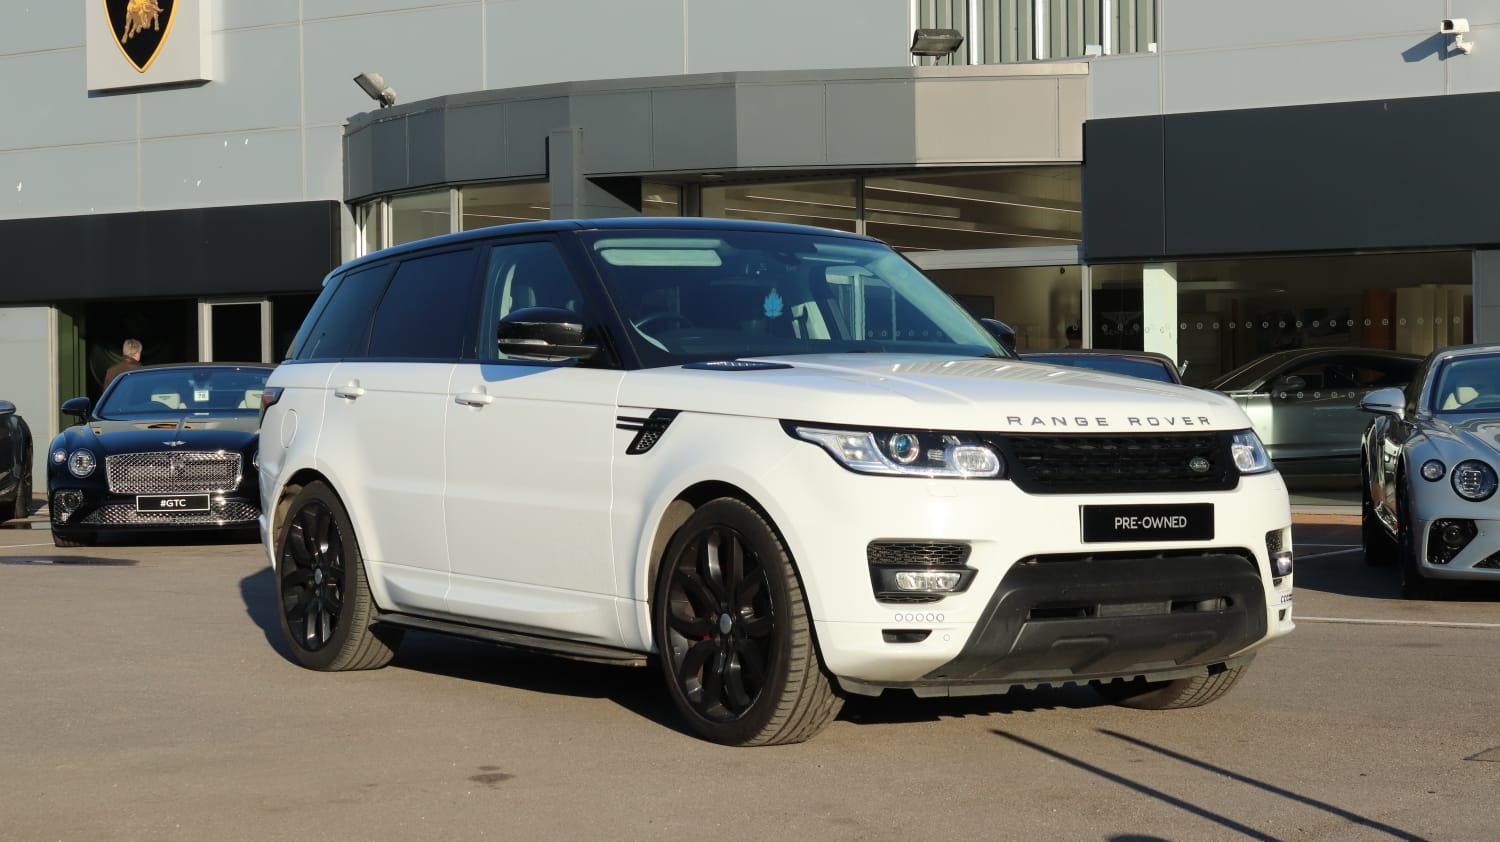 Land Rover Range Rover Sport 3.0 SDV6 [306] Autobiography Dynamic 5dr Auto Diesel Automatic Estate (2015)